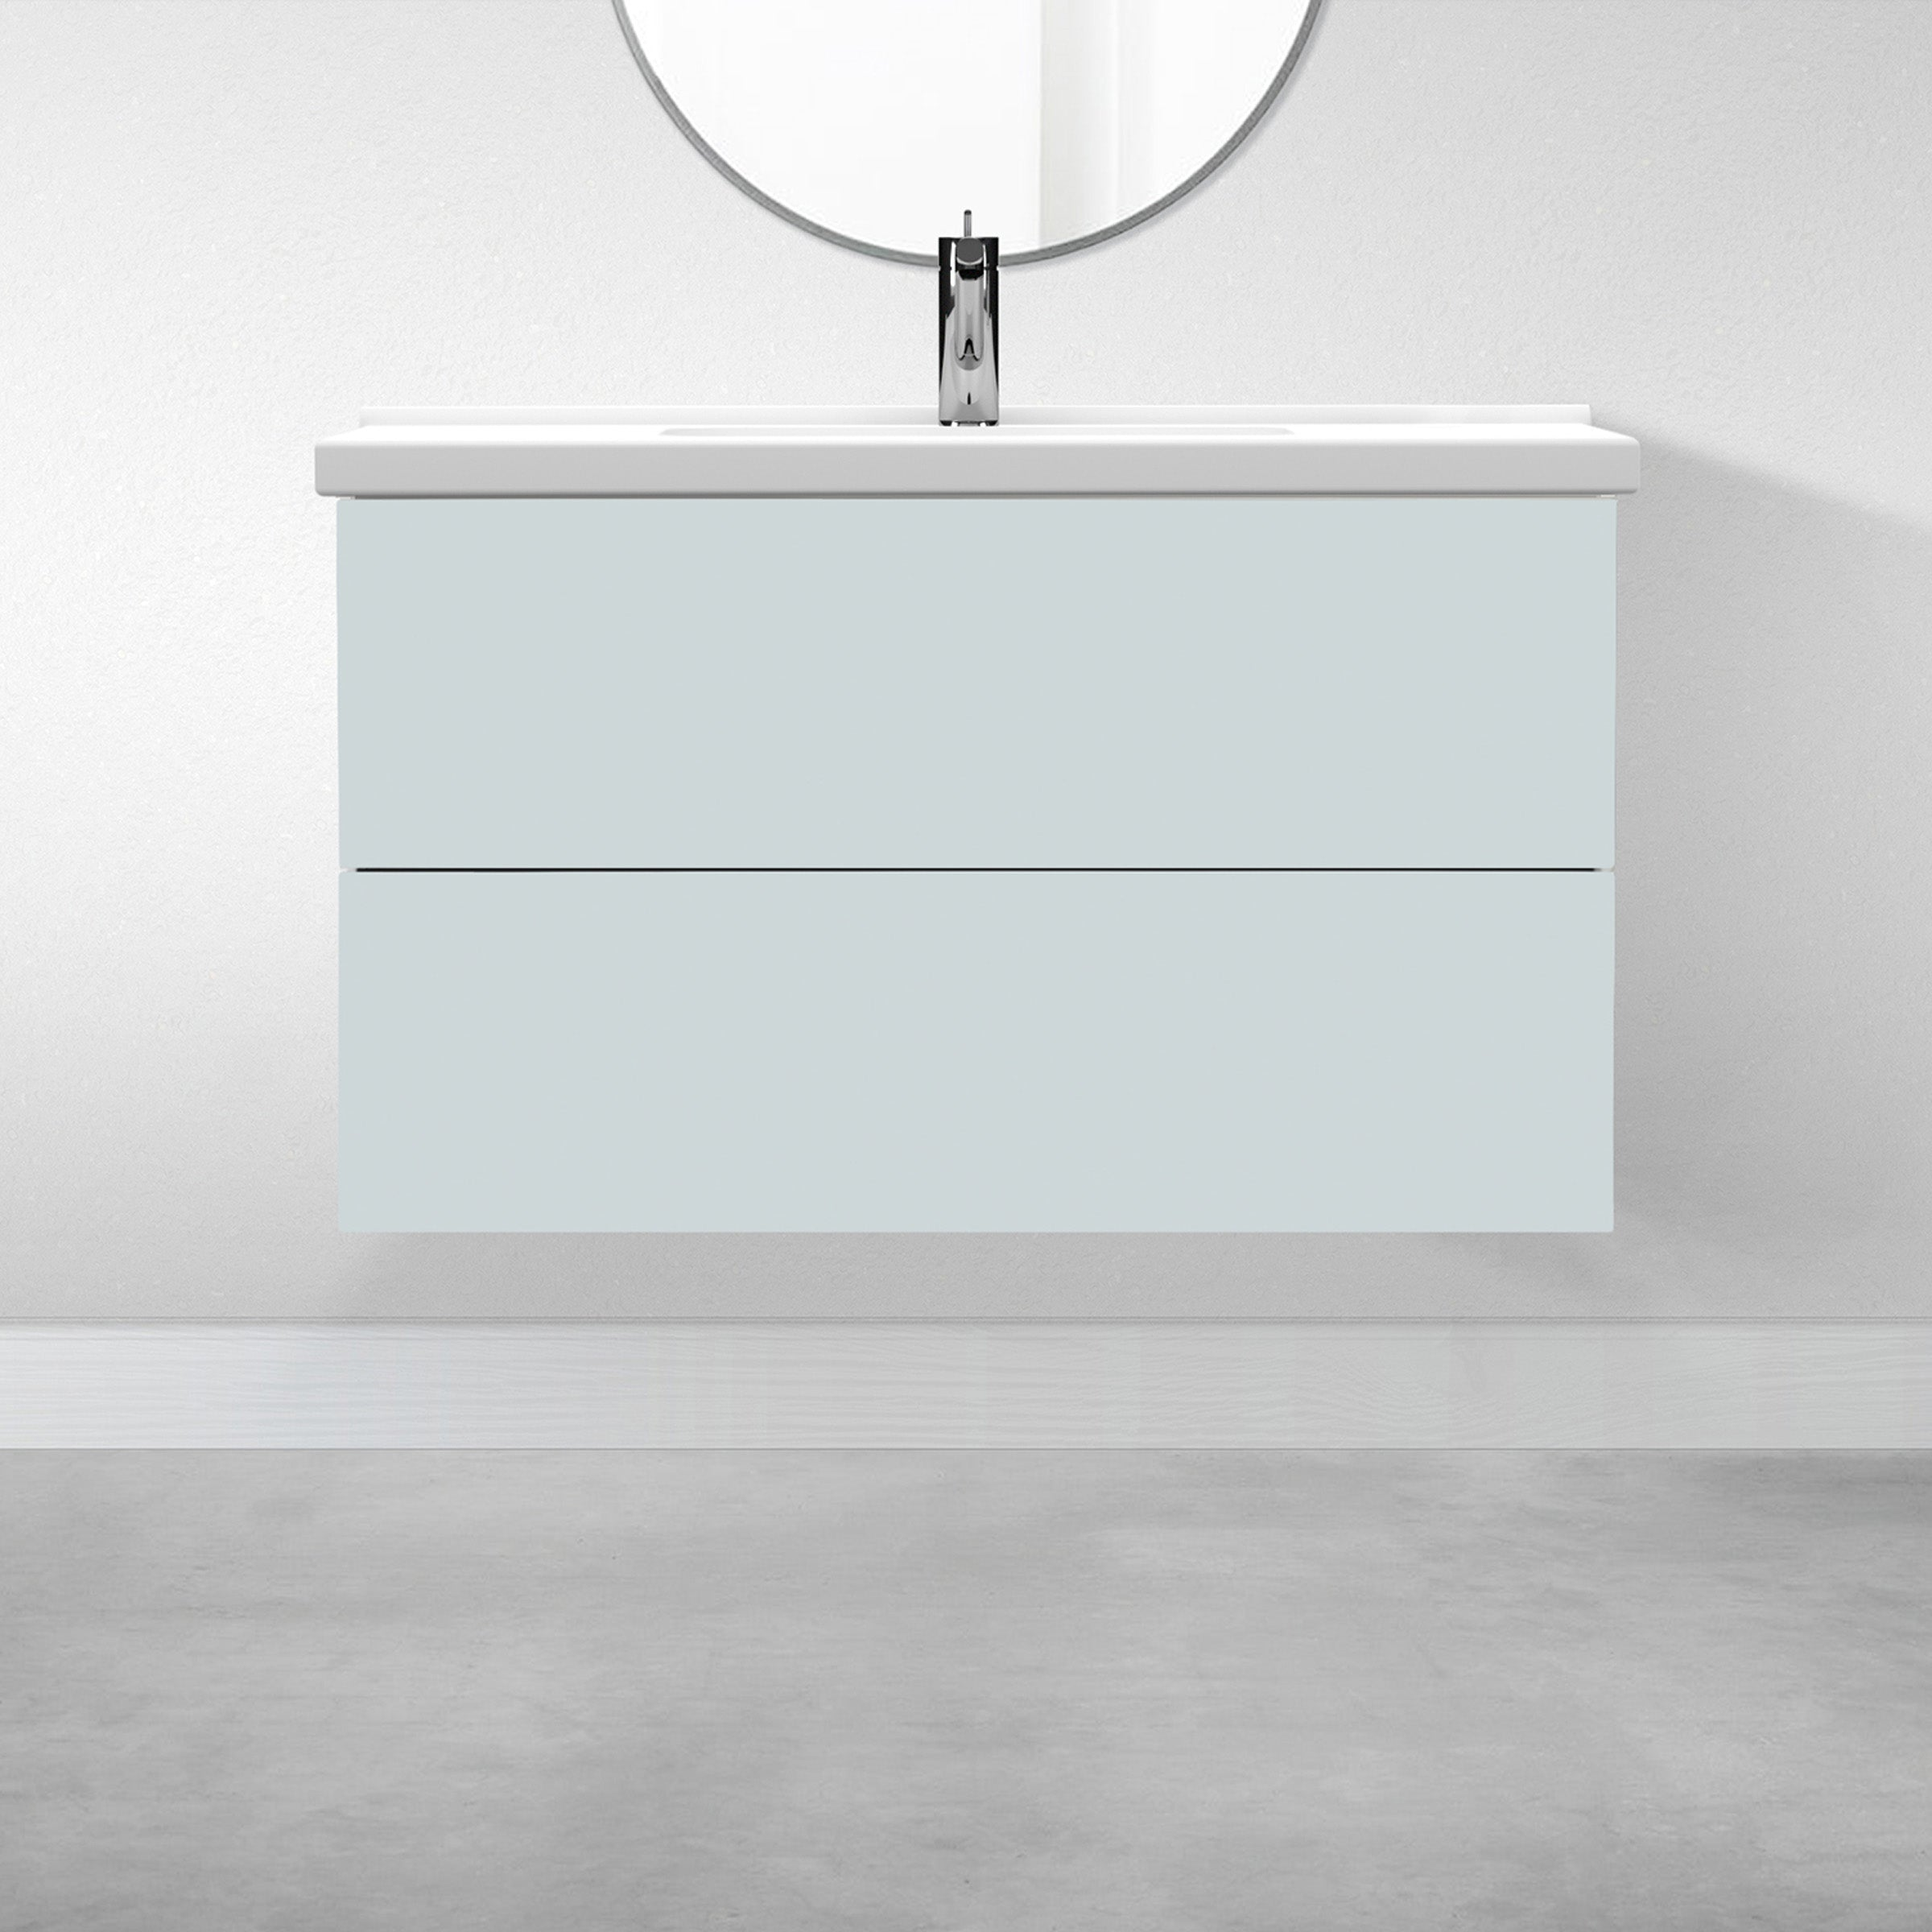 "2 Drawers - 39 3/8"" for Godmorgon Supermatte Slab / Agave"